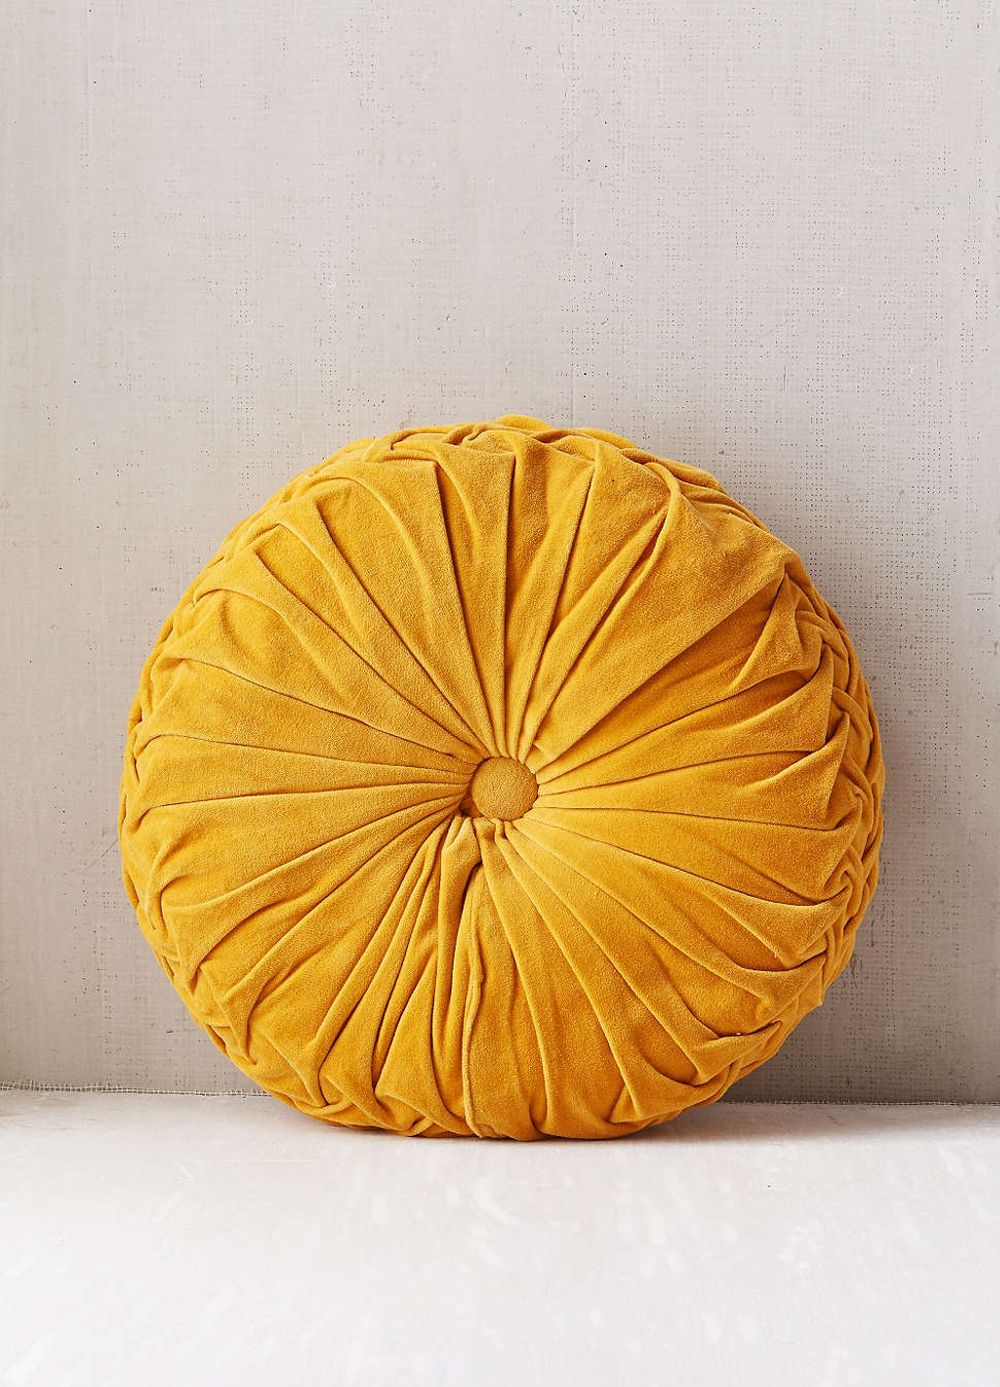 White Leather Sofa mustard yellow velvet cushion from athropologie interiors interior design fort for the sofa